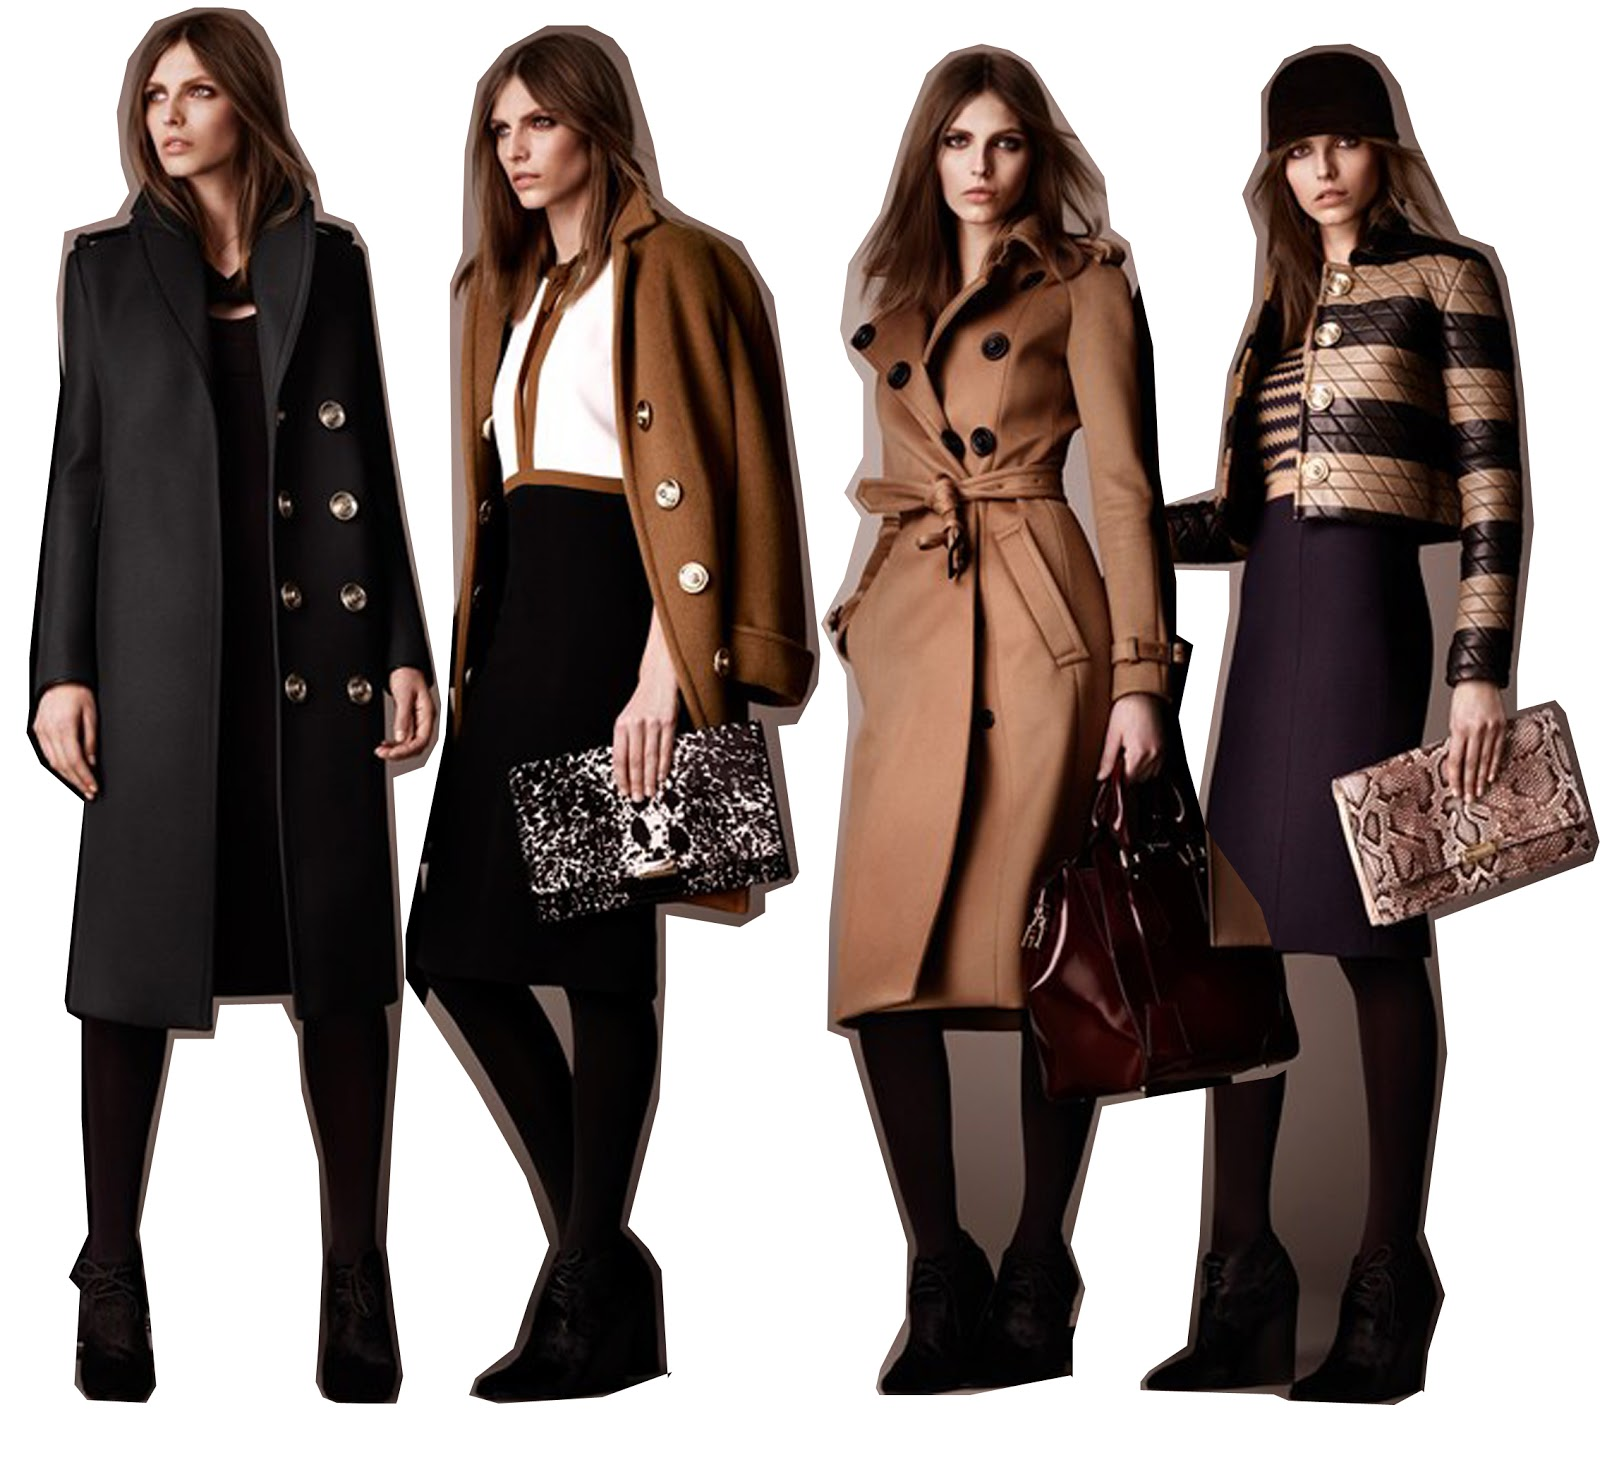 burberry prorsum quilted leather jacket 2011 love the statement buttons in the pre collection, also some of the